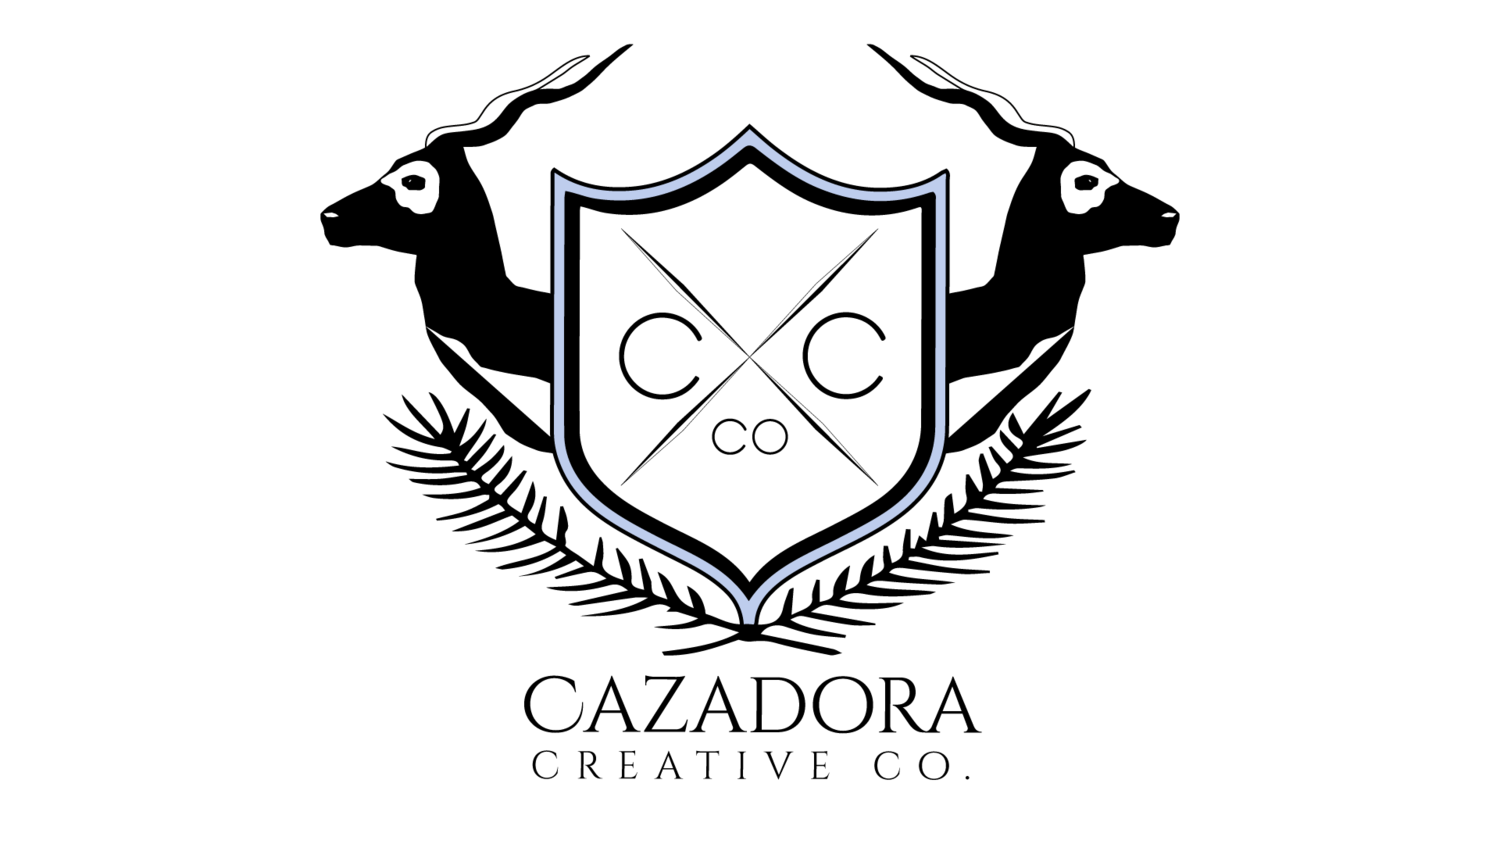 Cazadora Creative Co.